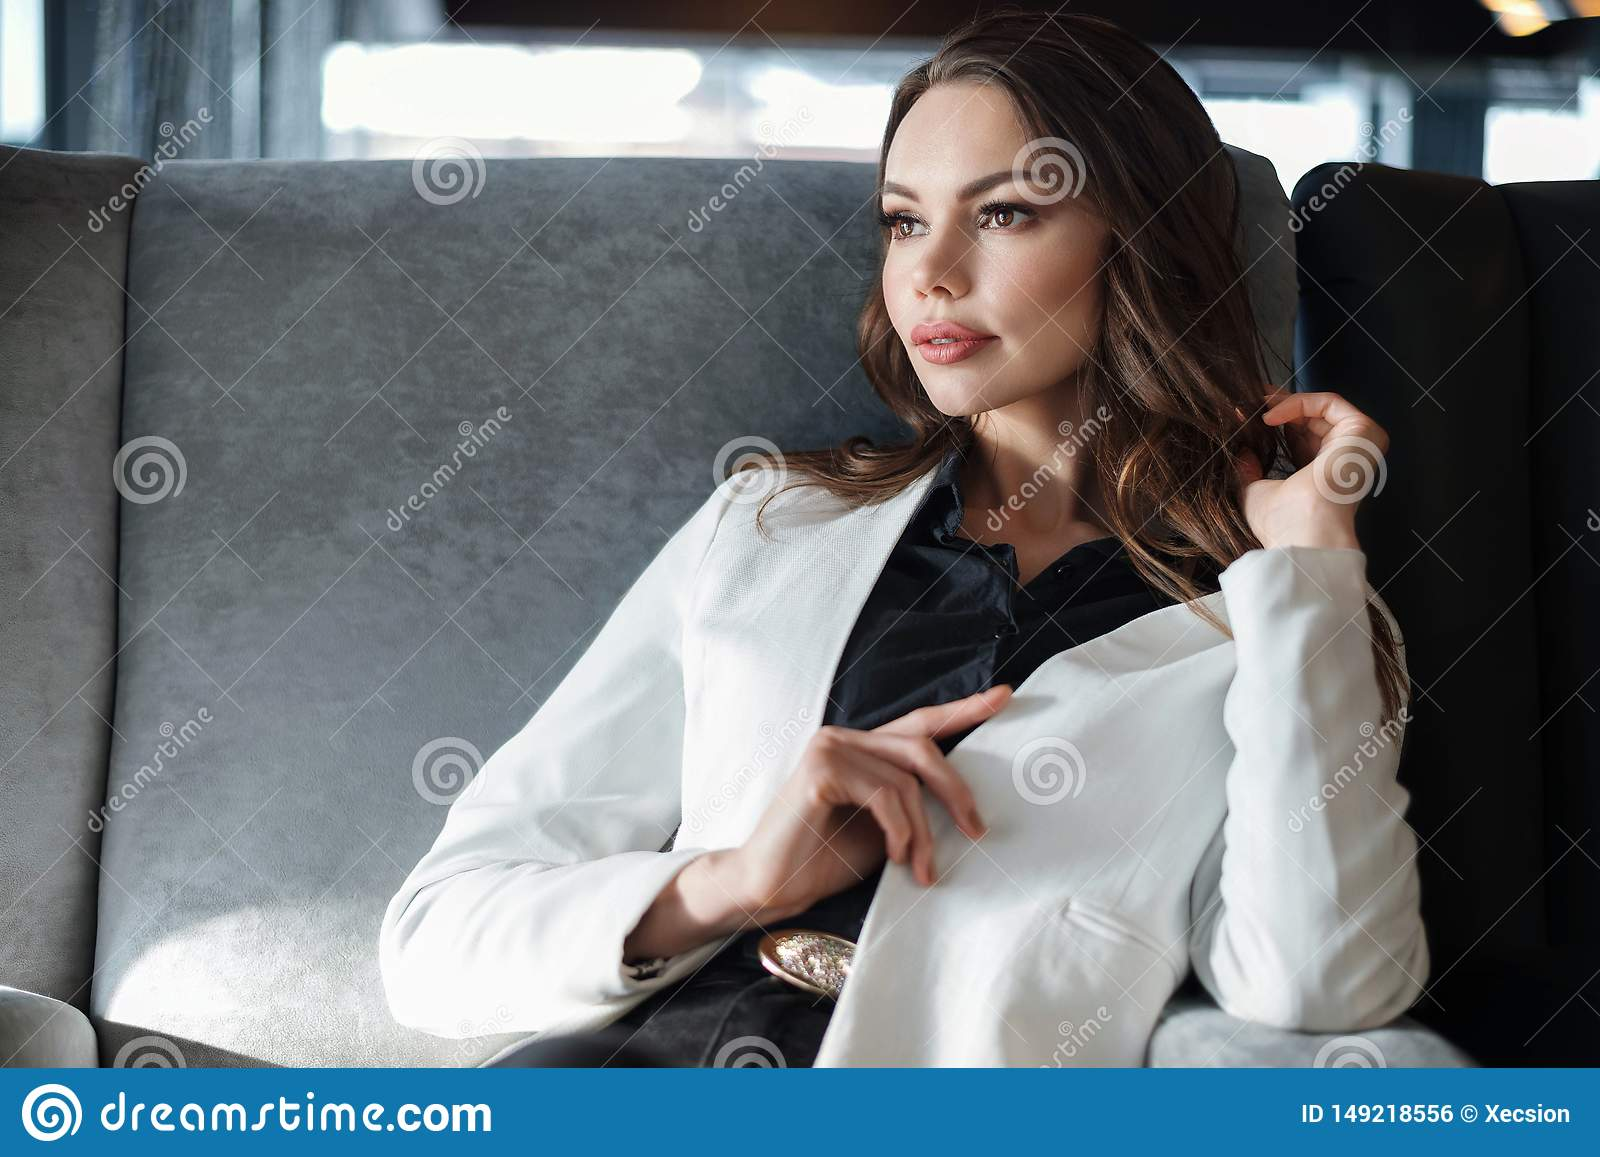 Woman sitting in a cafe. Close-up on a Cup of coffee in hand